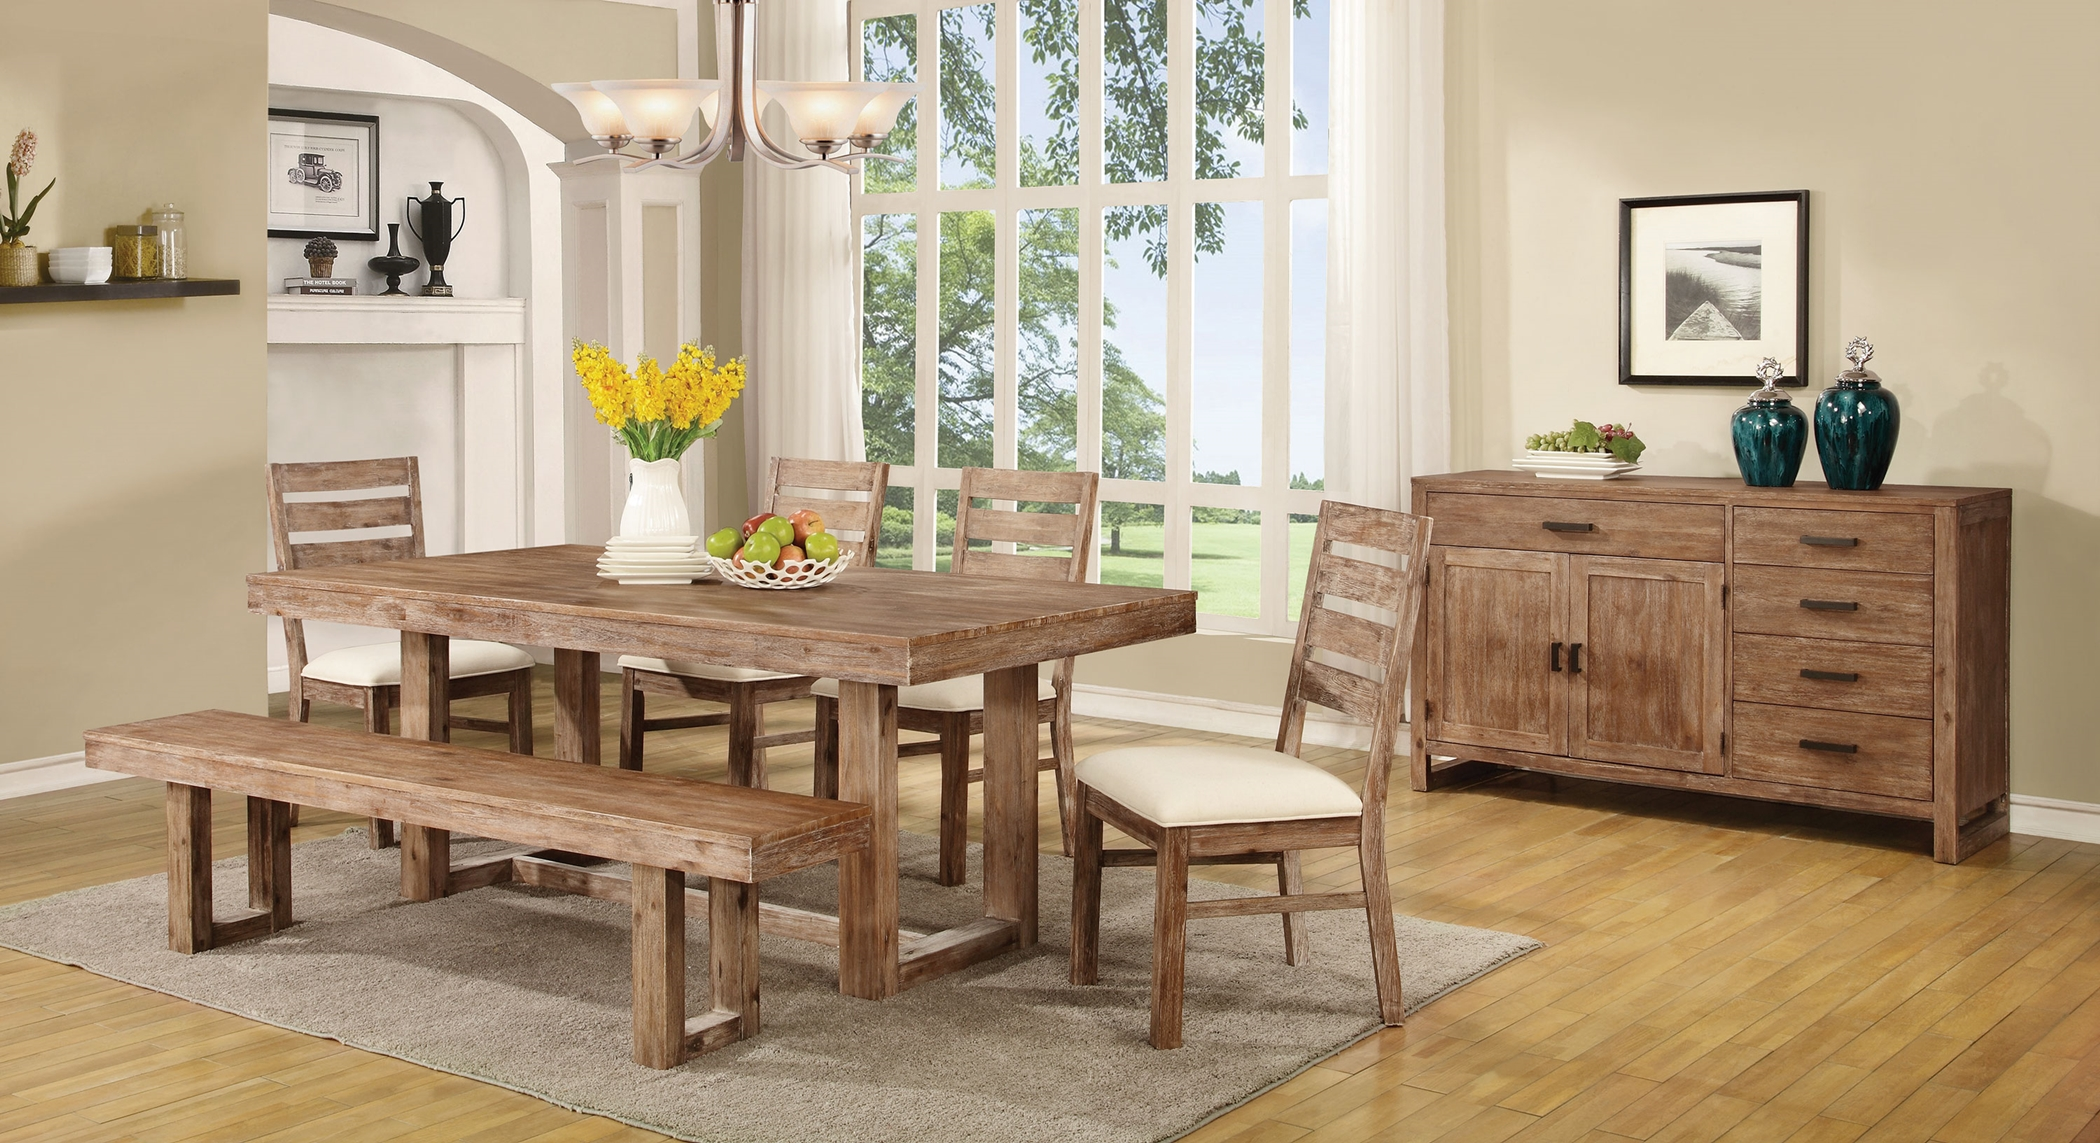 Elmwood Rustic 5 Pc.